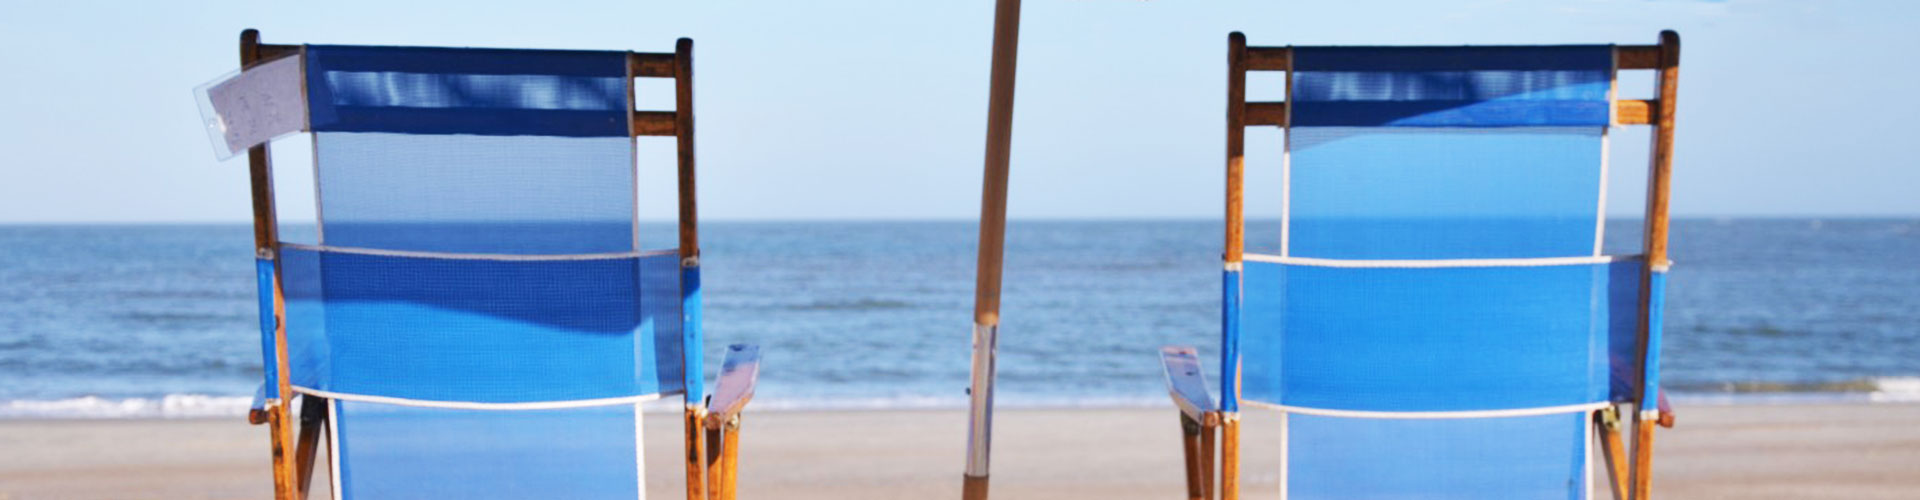 beach chair rental isle of palms antique windsor chairs book your rentals now iop company